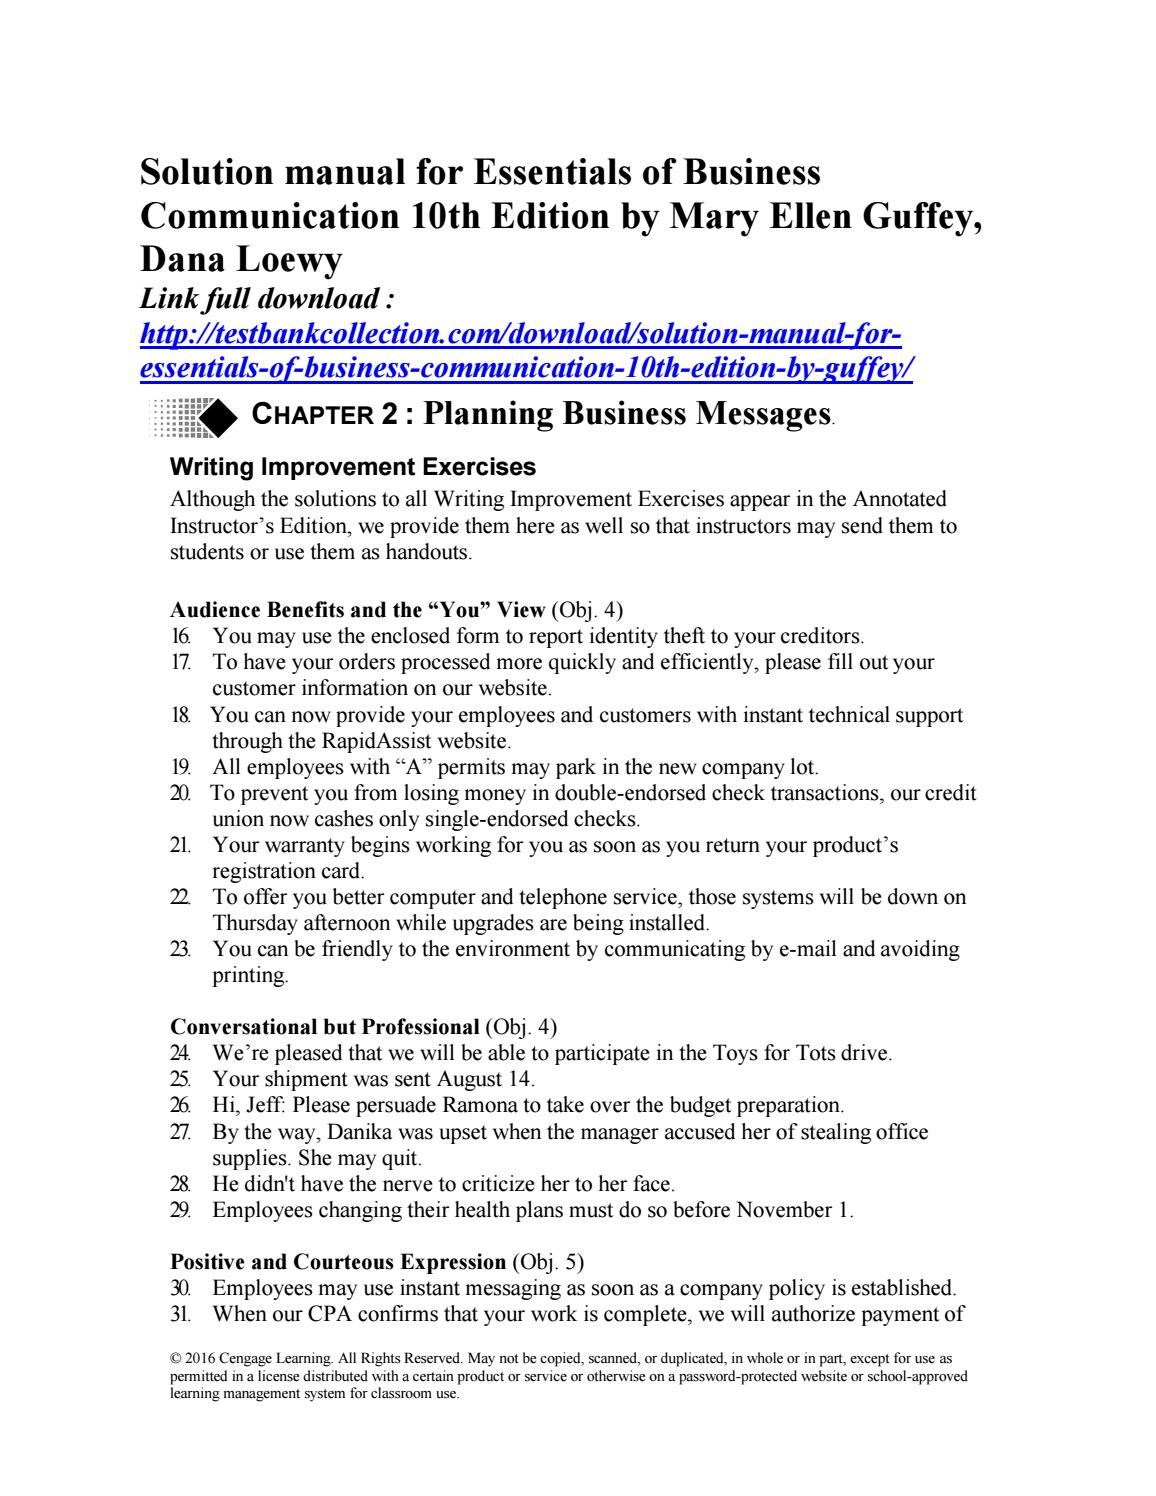 Essentials Of Business Communication 11th Edition Pdf